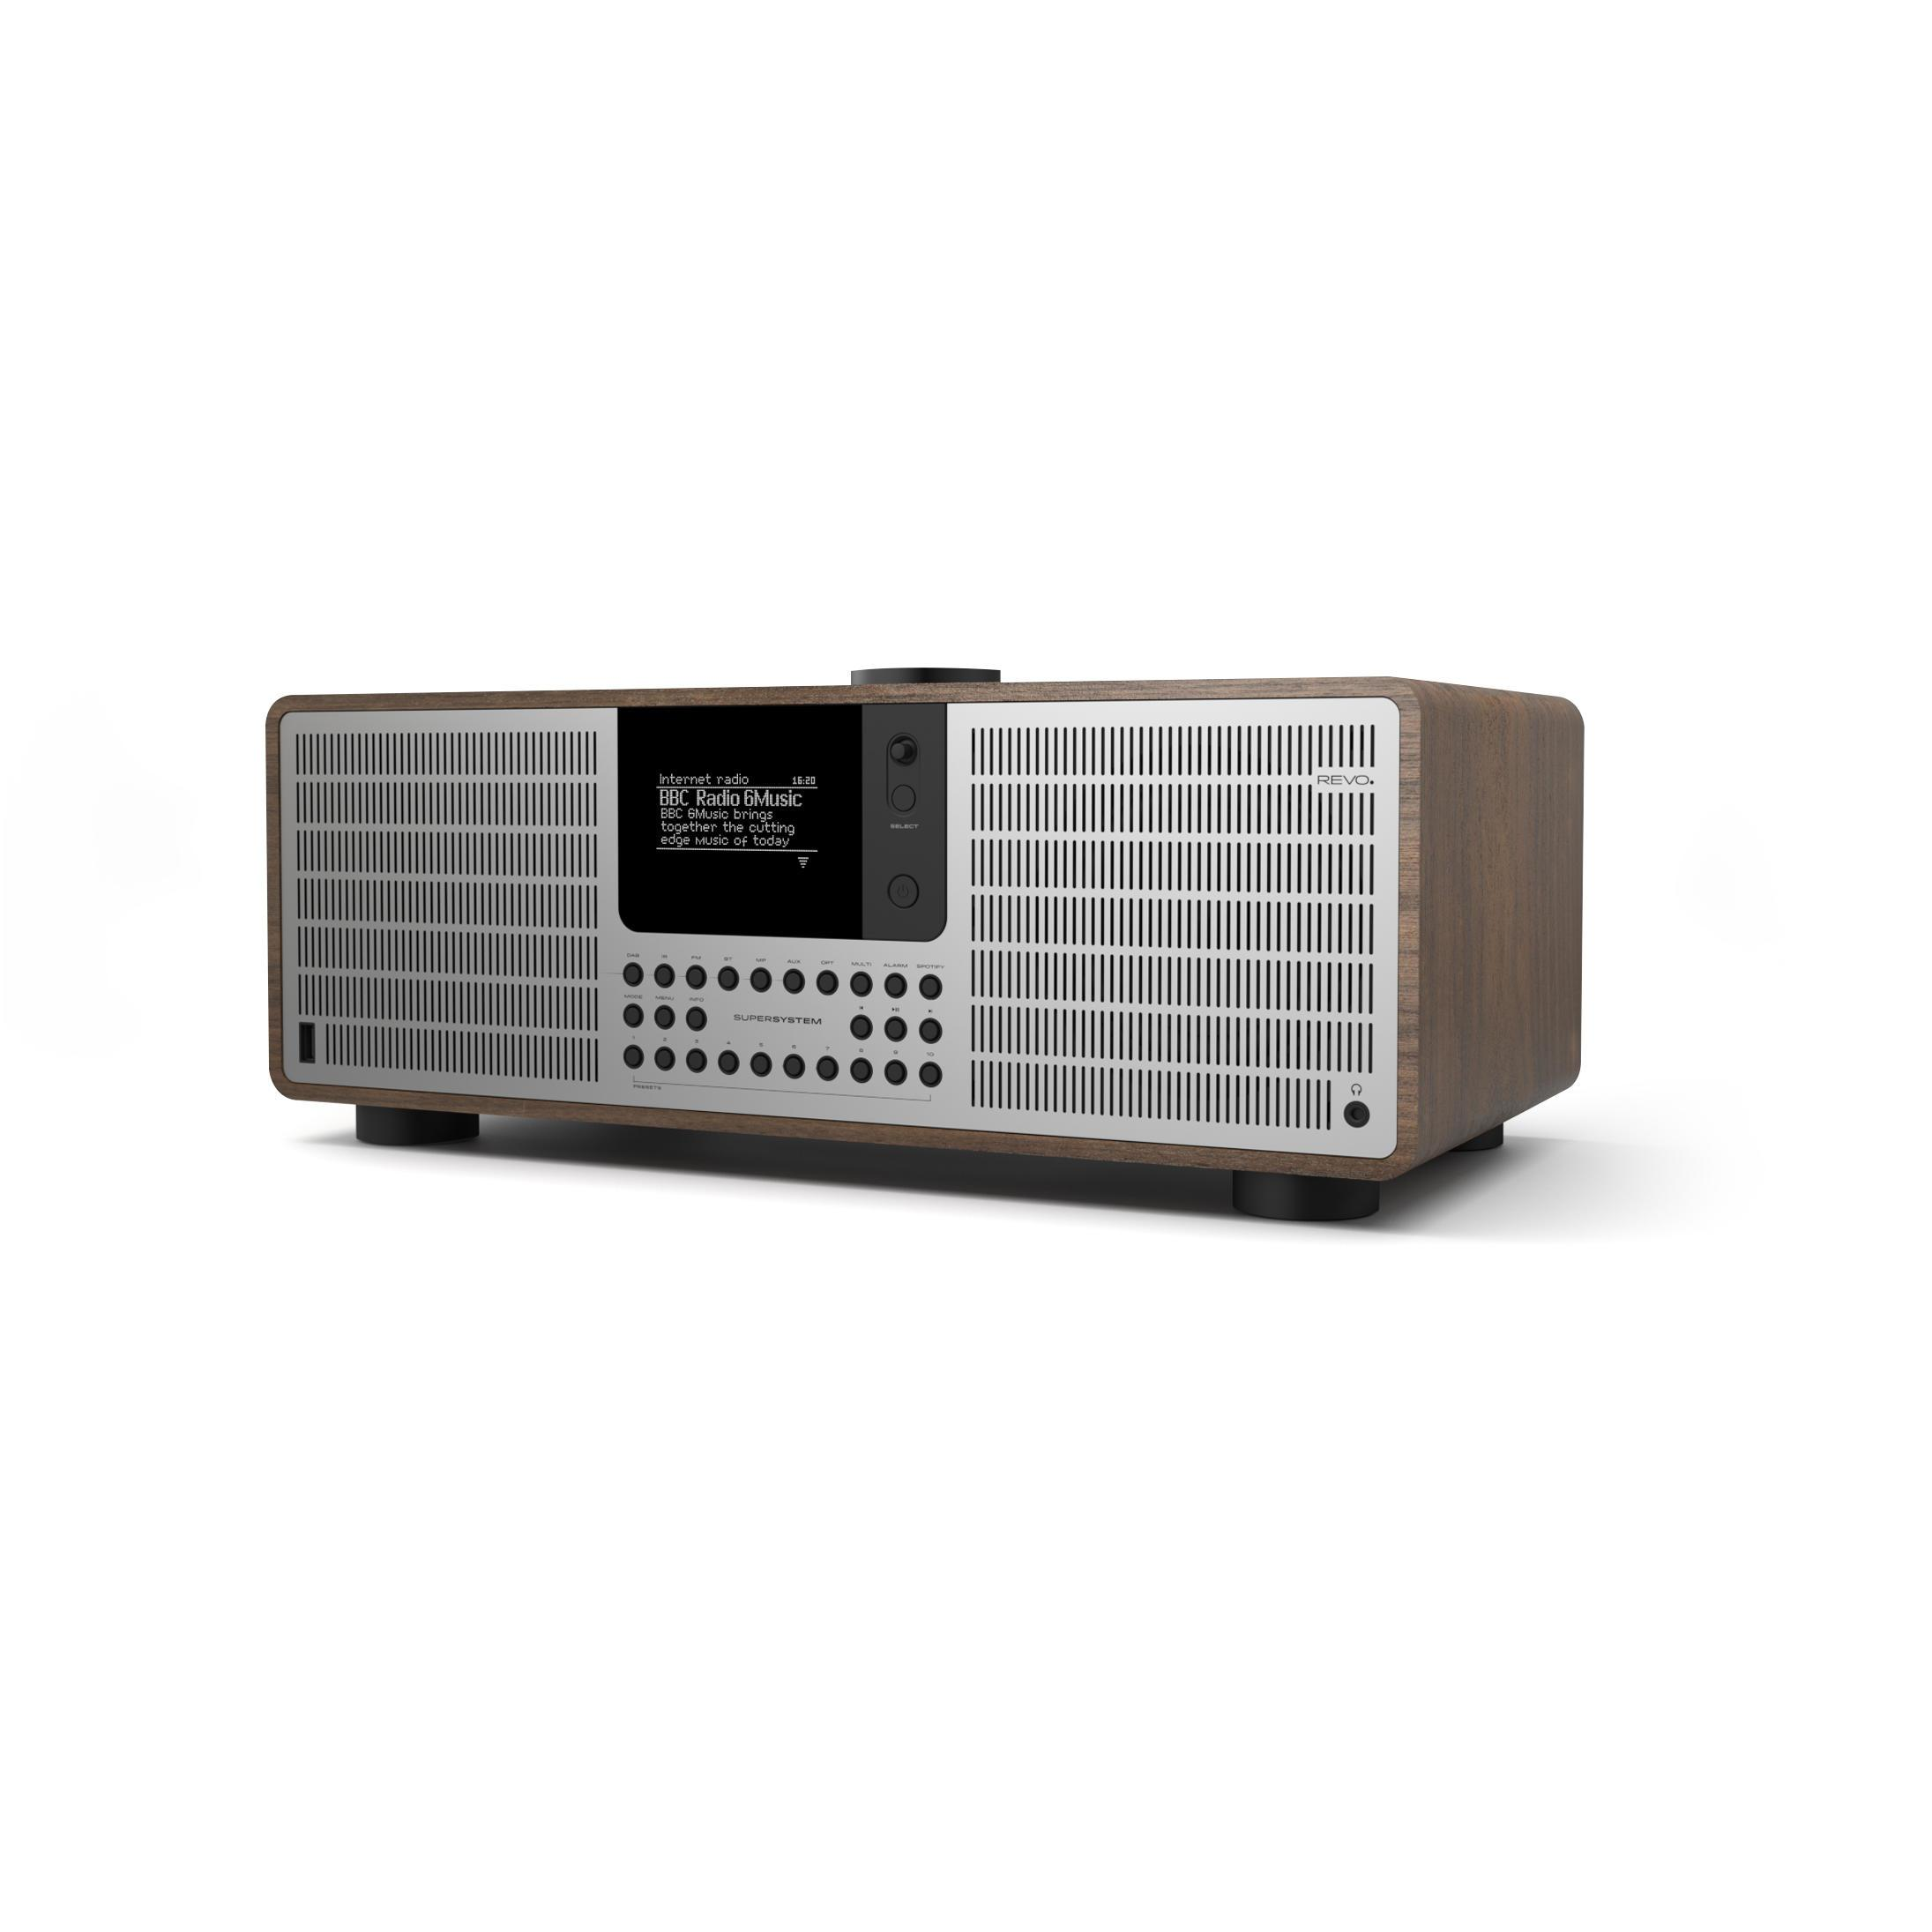 Revo SuperSystem DAB Internet Radio With Spotify - Walnut / Silver